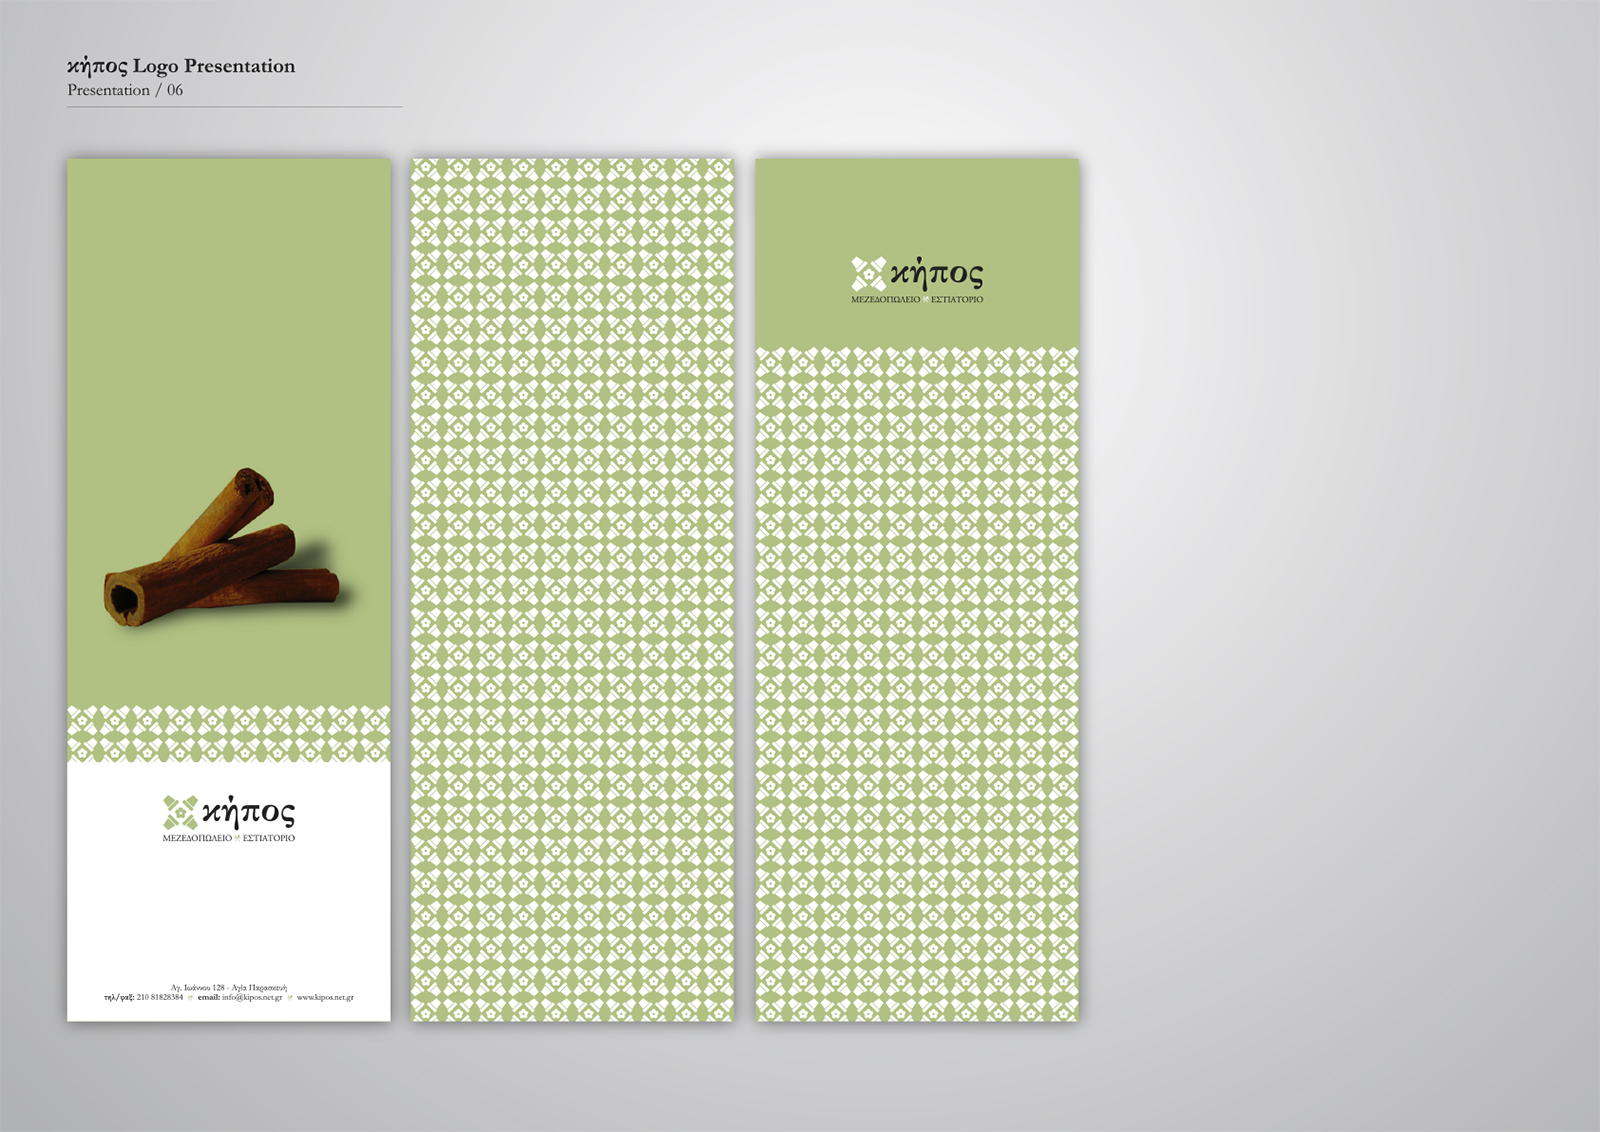 Corporate Identity Kipos Restaurant_Logo presentation_6_Yianart